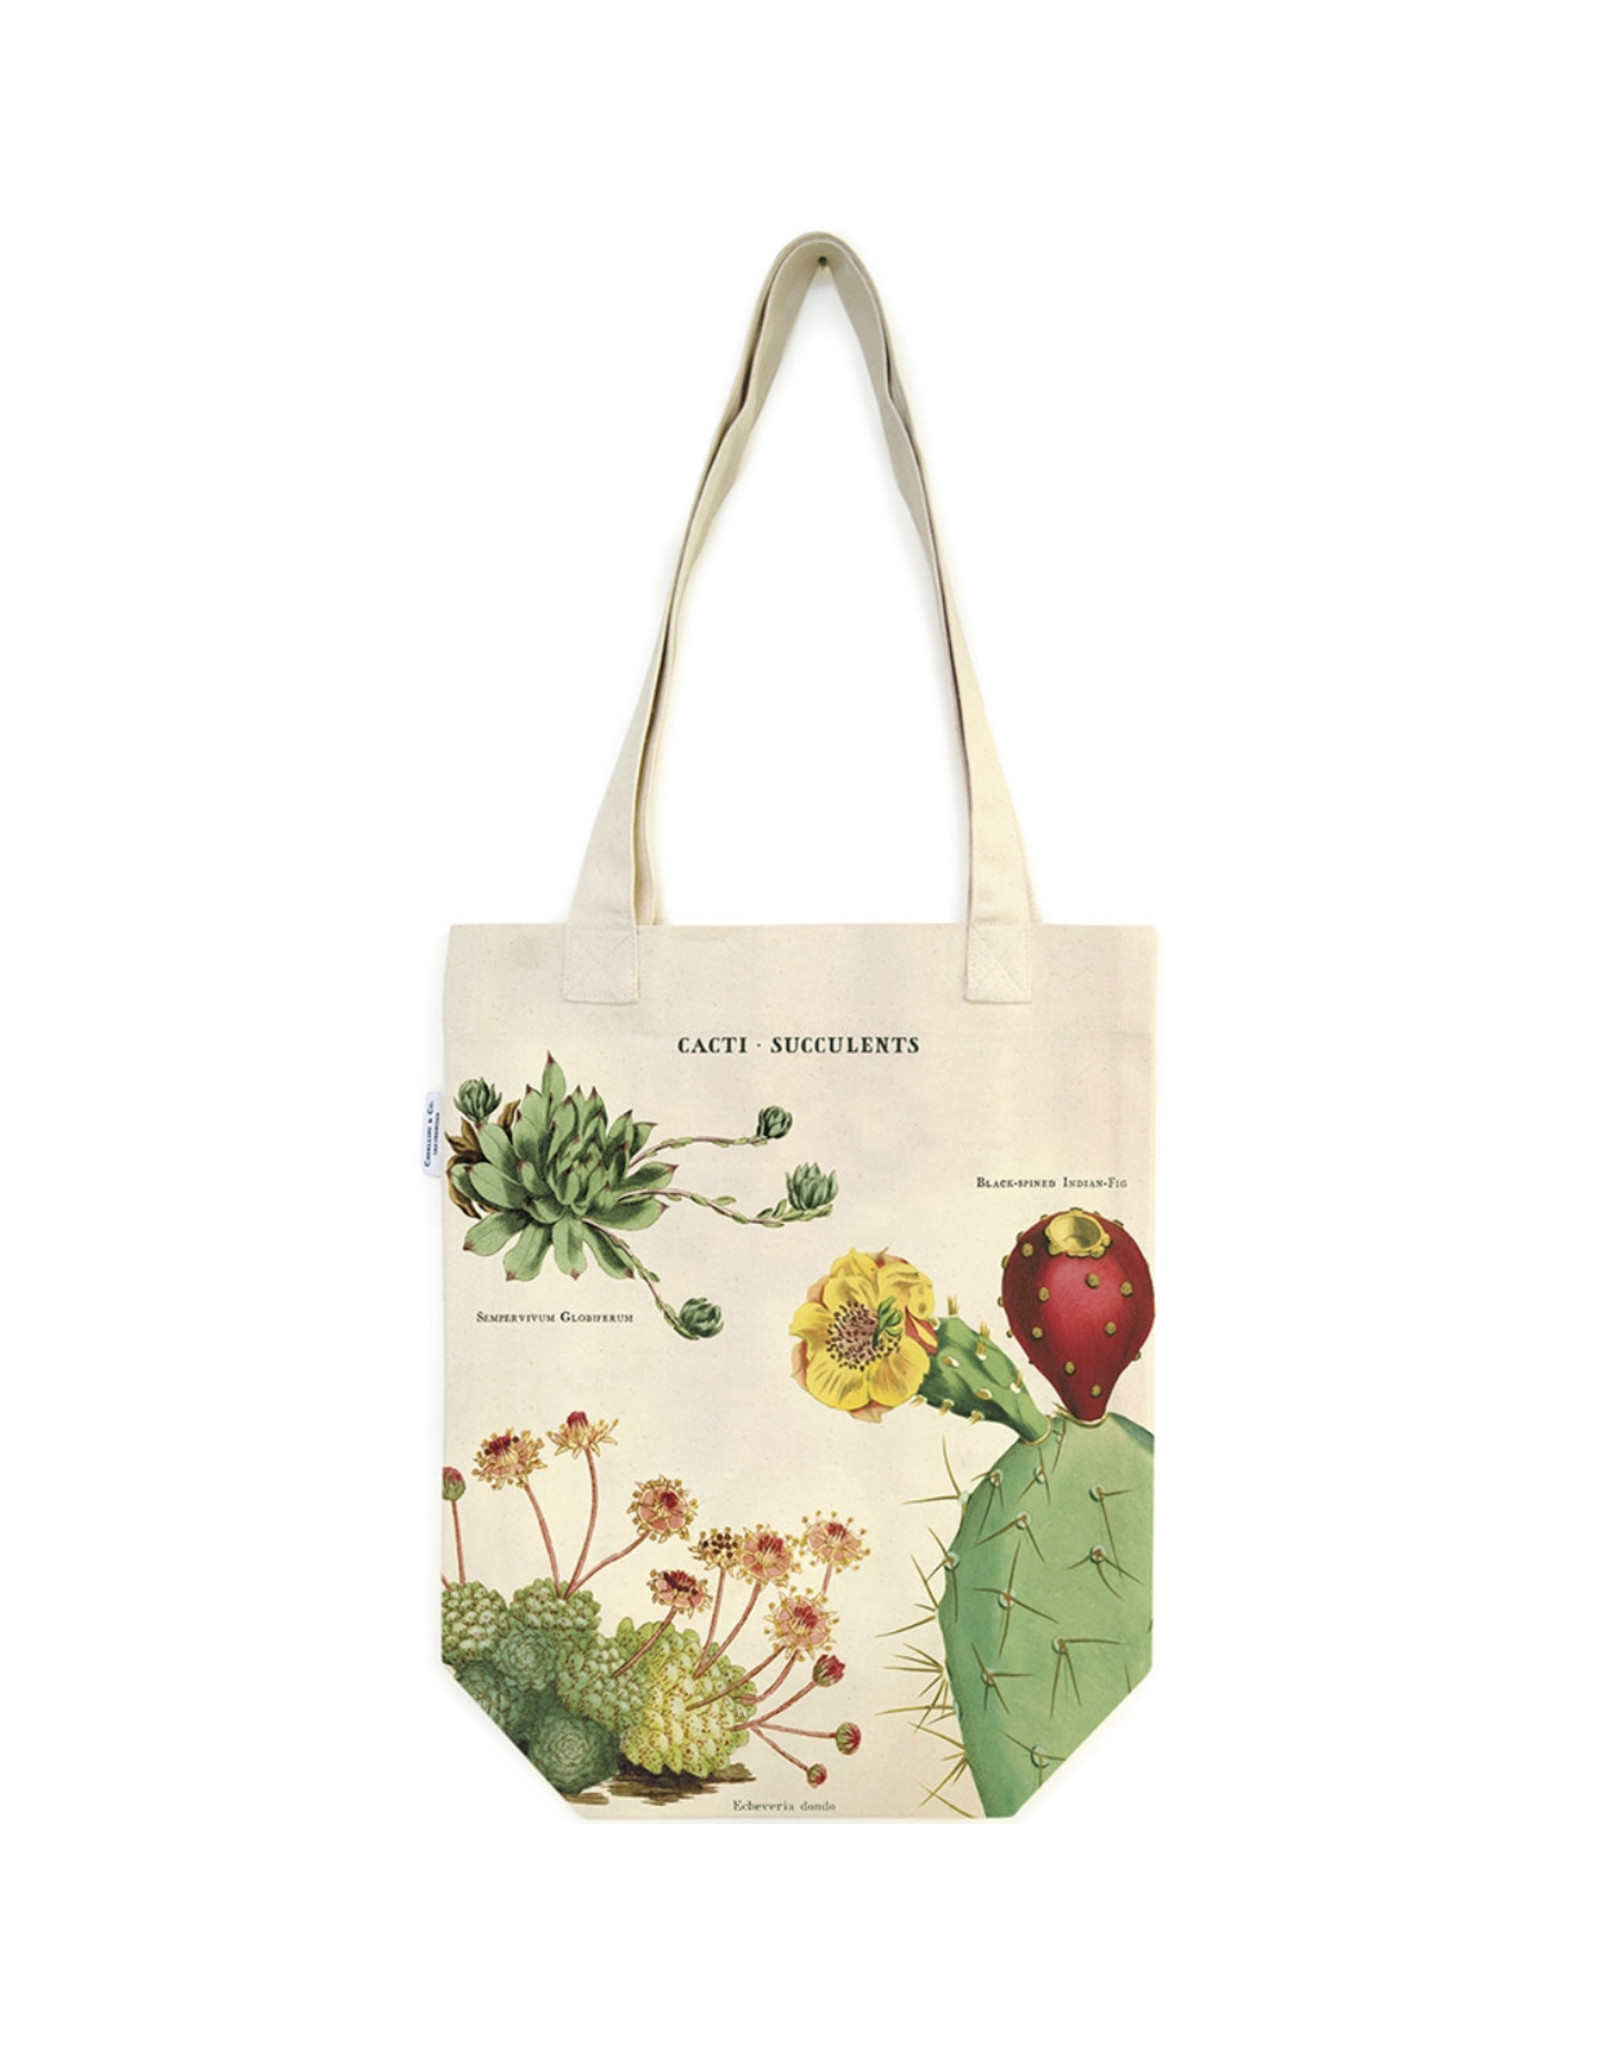 Cavallini Papers & Co. Cacti & Succulents Tote Bag